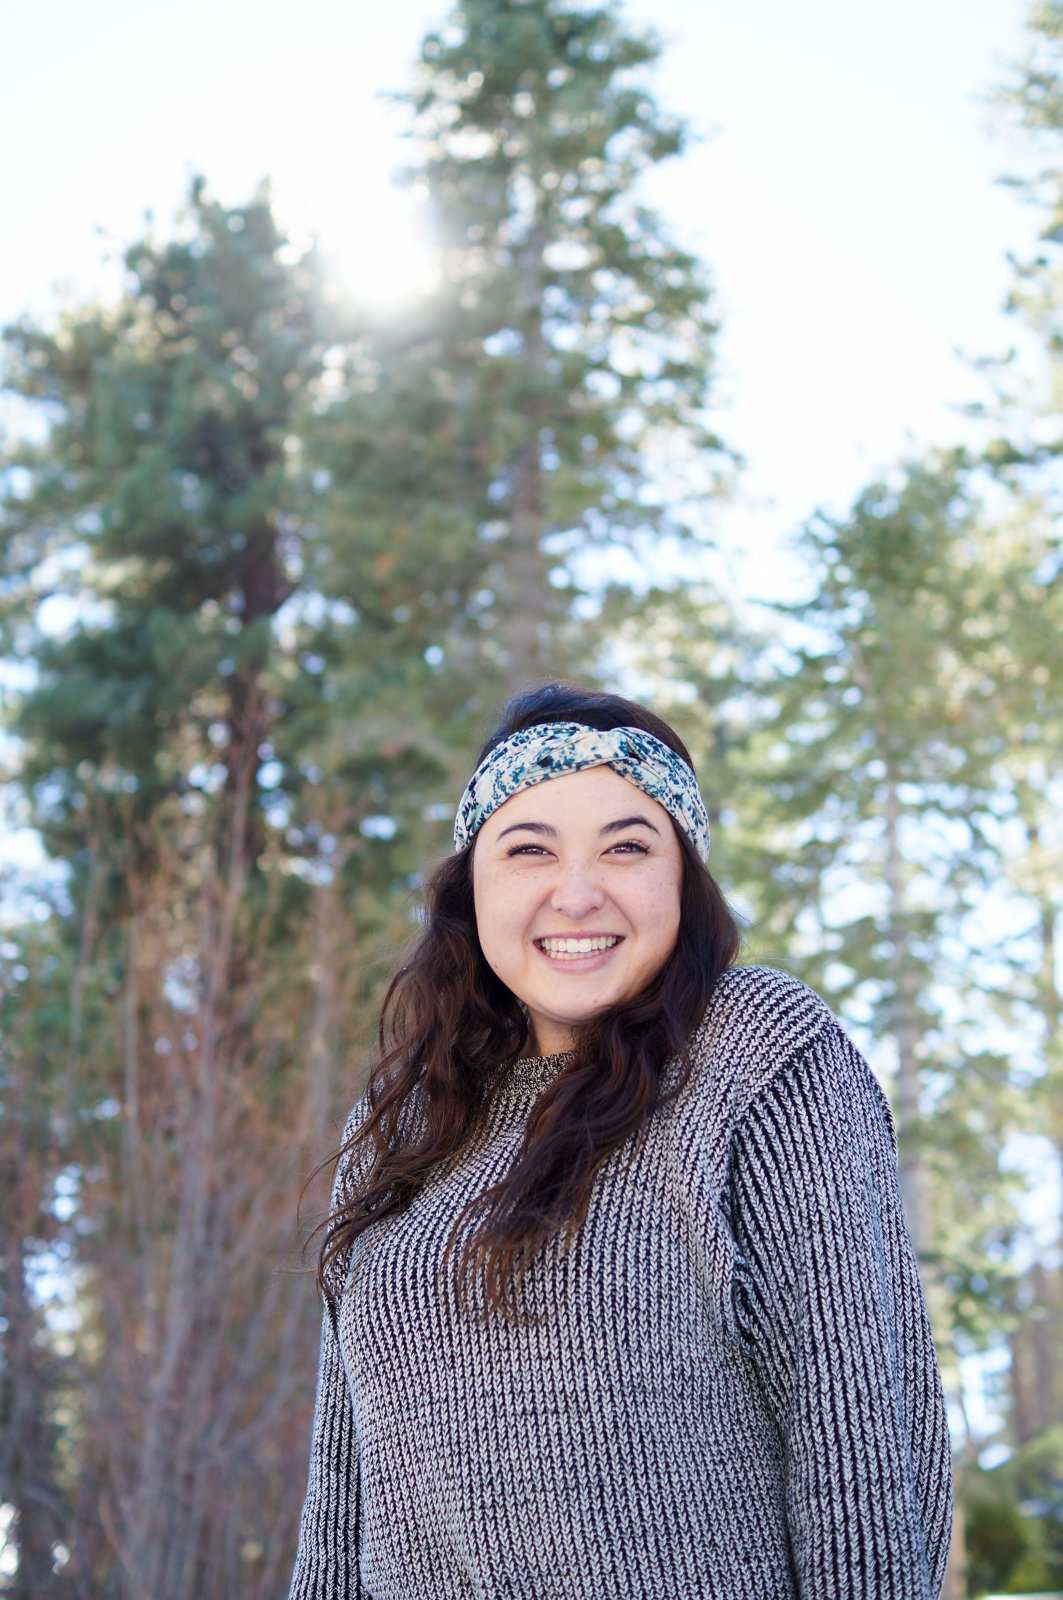 All Smiles at Big Bear Lake